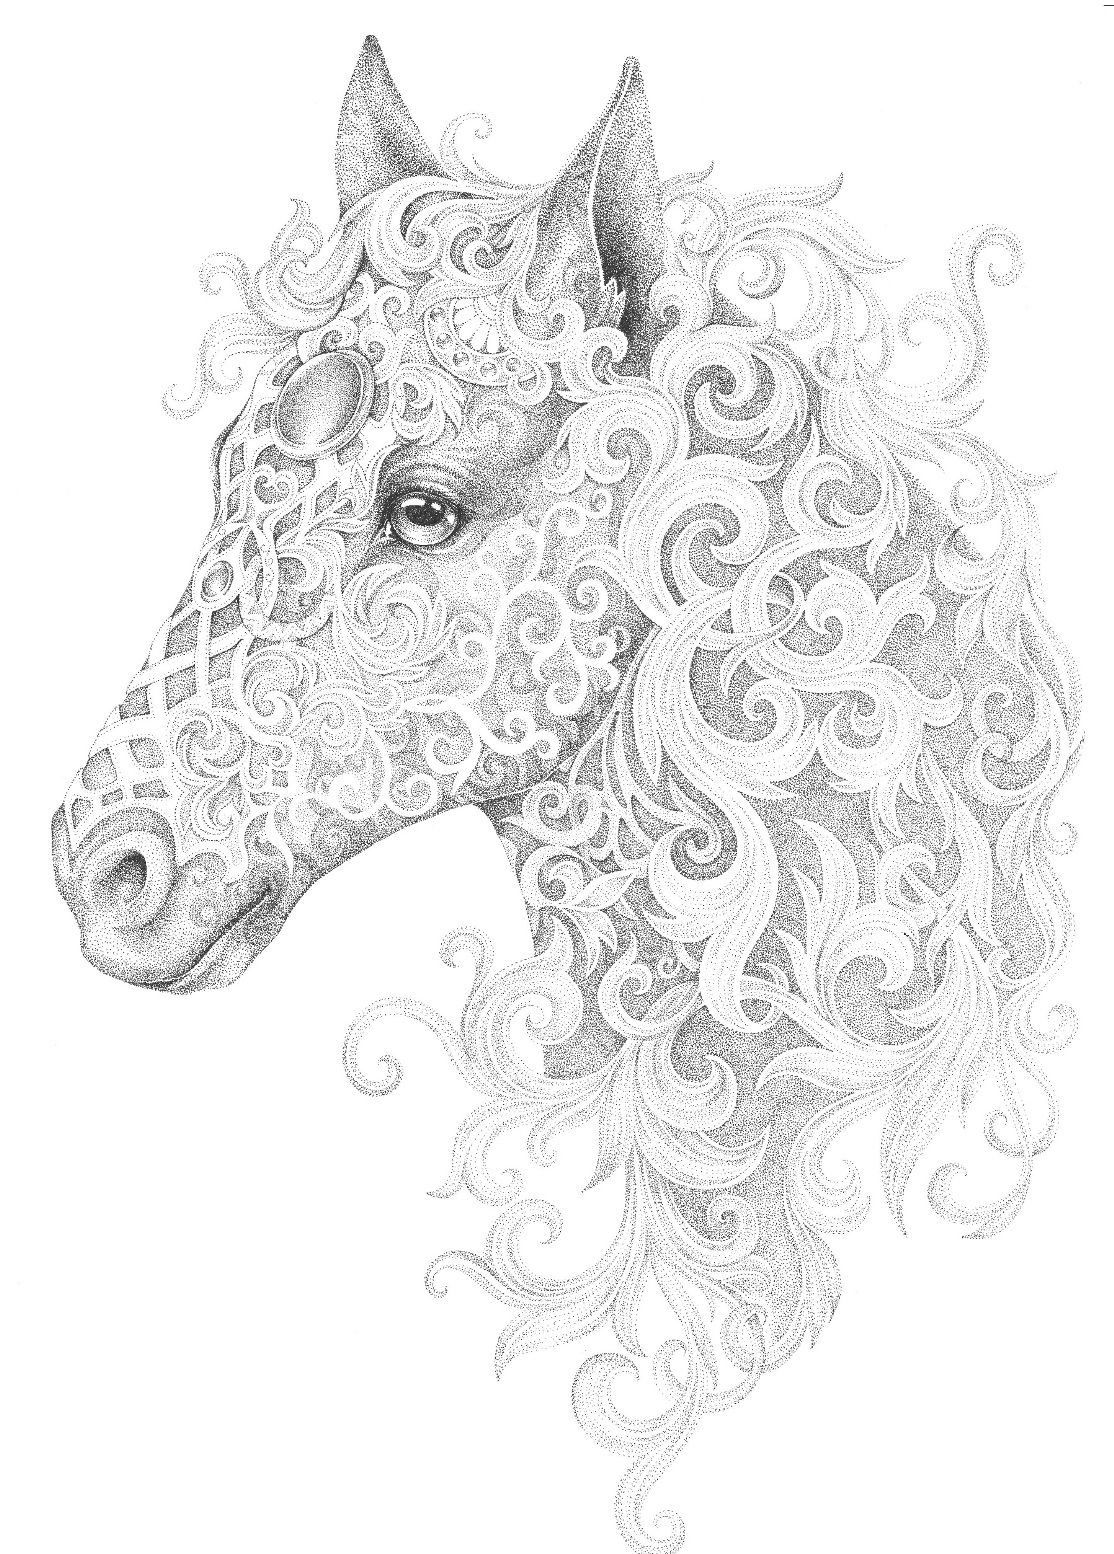 Horse adult colouring page colouring sheets art, precious moments love coloring pages